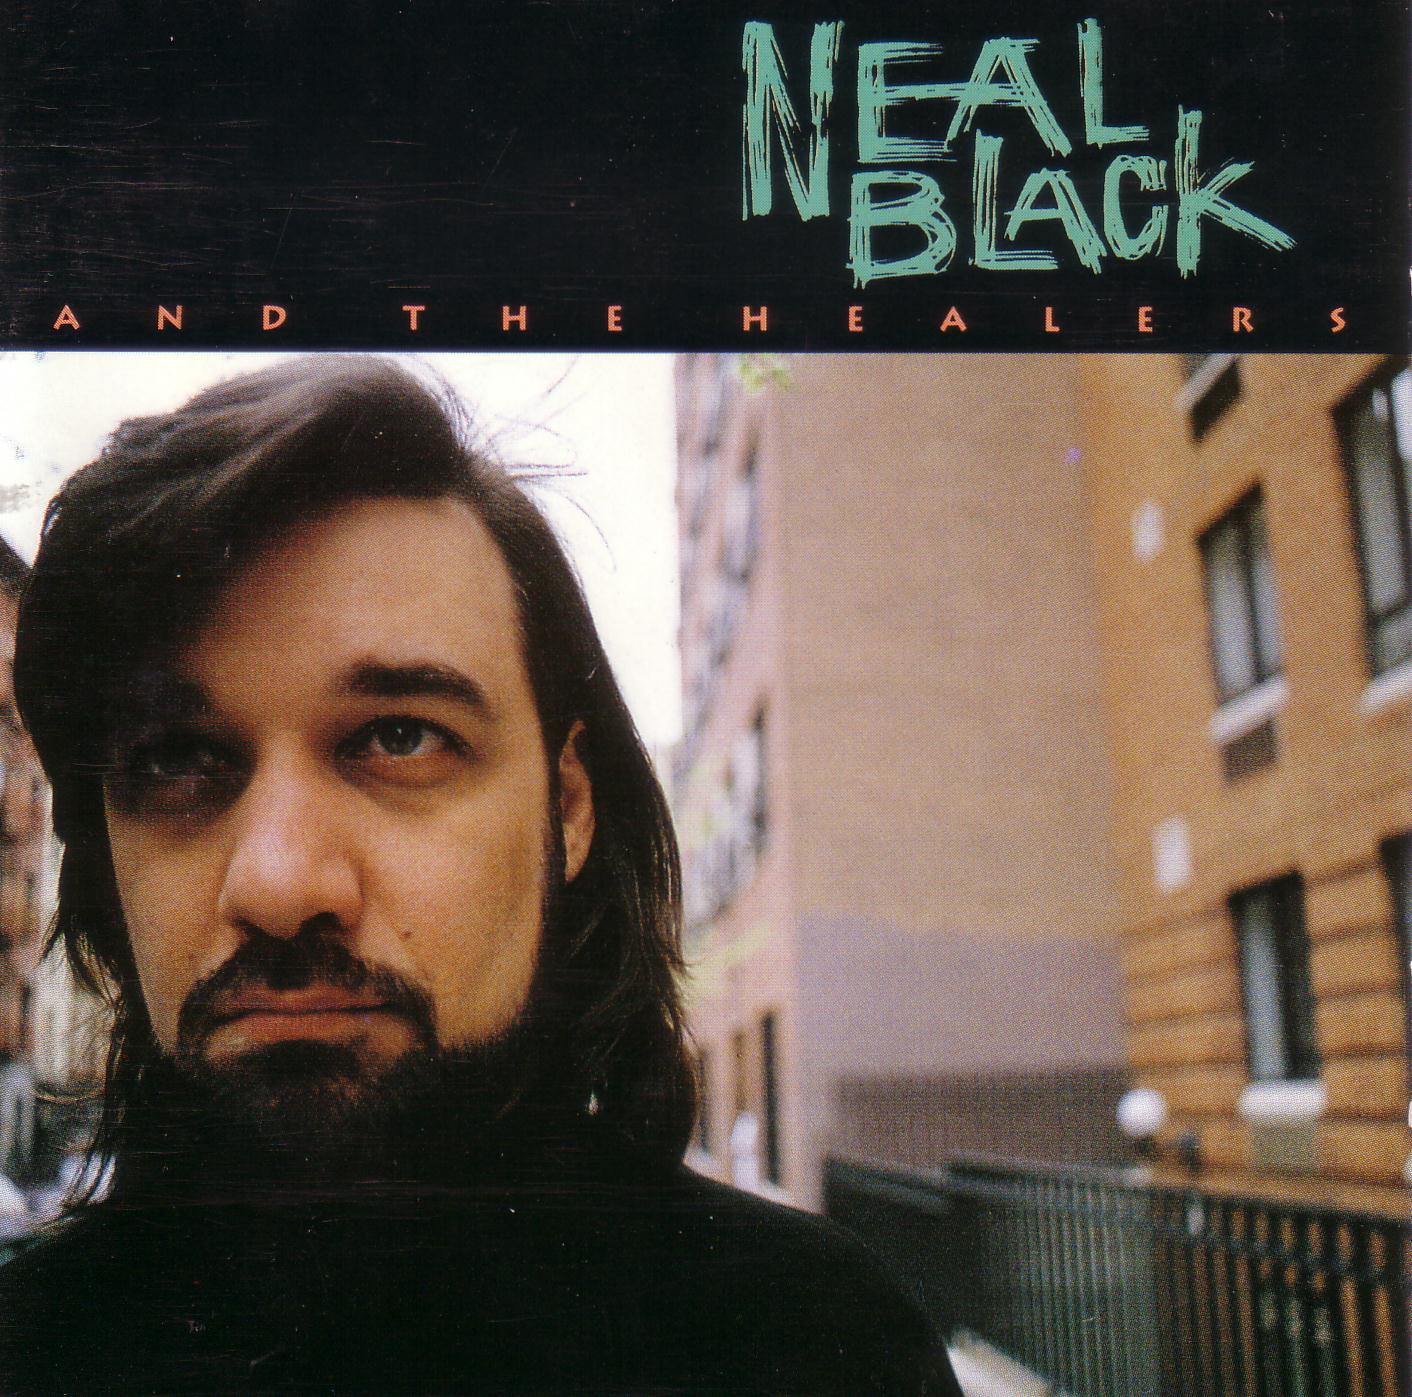 neal black singles Perhaps the most distilled examples of patrice's worldview occurred while he was hosting the black phillip show this short-lived radio program was intended to be a parody of dr phil-type self help shows, dispensing relationship, dating, and game advice for men all 13 episodes of the show are available for streaming on youtube: here are some.